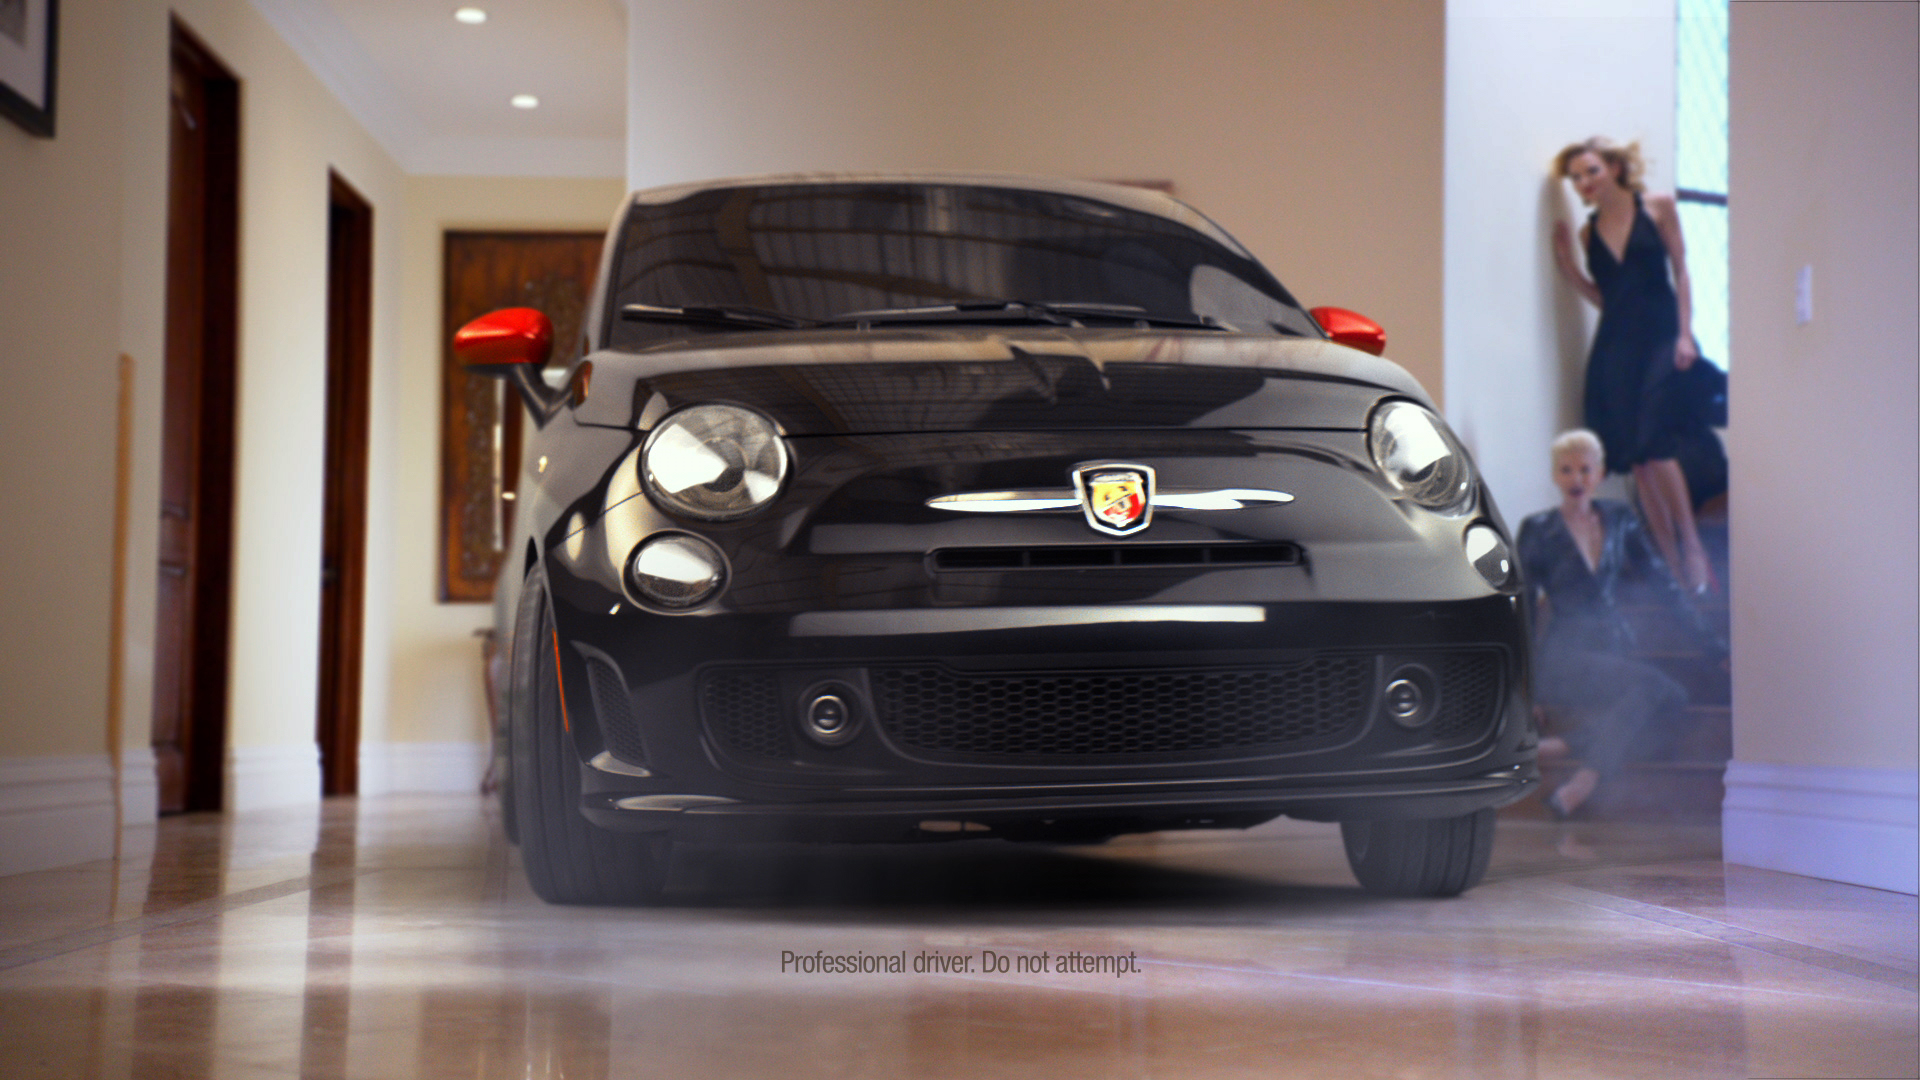 The Fiat brand unveiled a new commercial for the 2012 Fiat 500 A